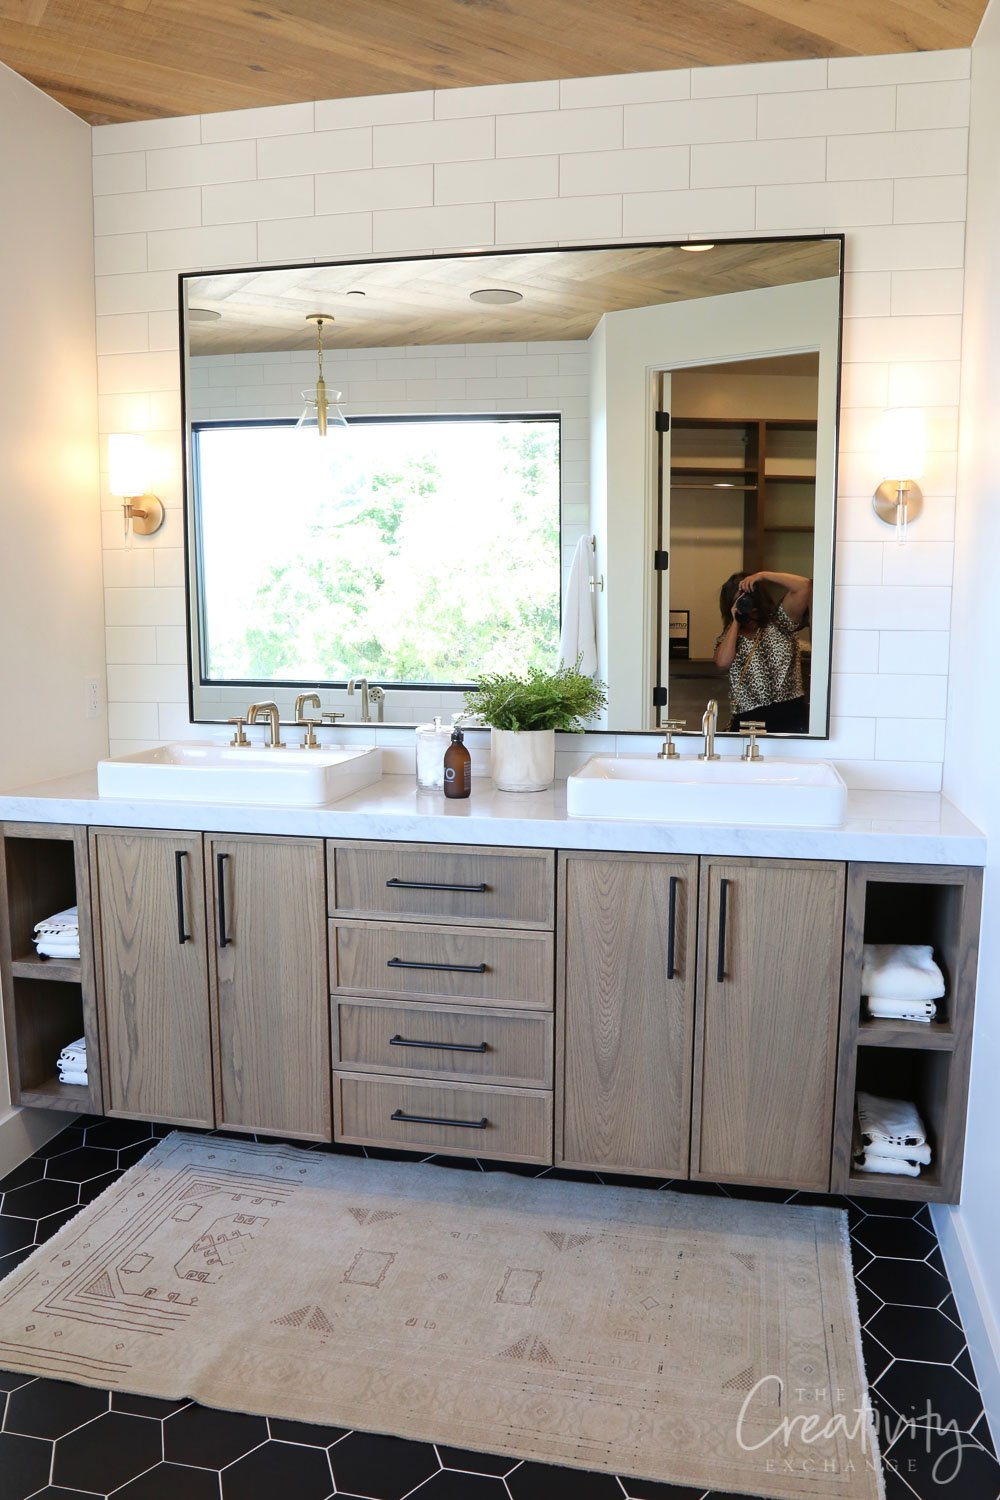 Bathroom with oak cabinetry